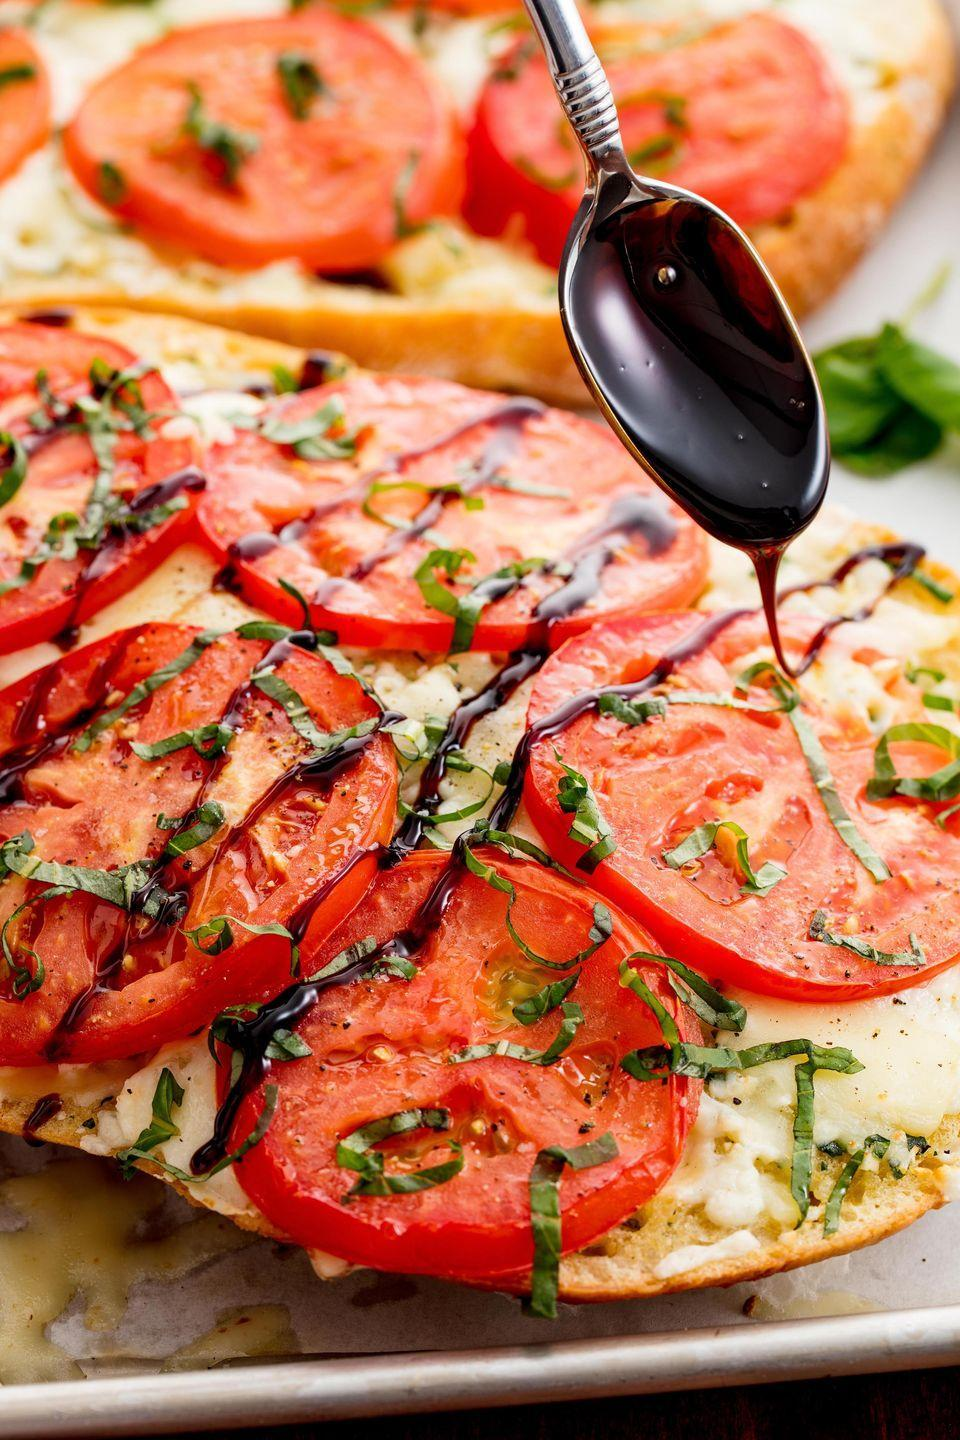 "<p>Melty mozzarella and fresh tomatoes give basic garlic bread a MAJOR upgrade.</p><p>Get the recipe from <a href=""https://www.delish.com/cooking/recipe-ideas/recipes/a51475/caprese-garlic-bread-recipe/"" rel=""nofollow noopener"" target=""_blank"" data-ylk=""slk:Delish"" class=""link rapid-noclick-resp"">Delish</a>.</p>"